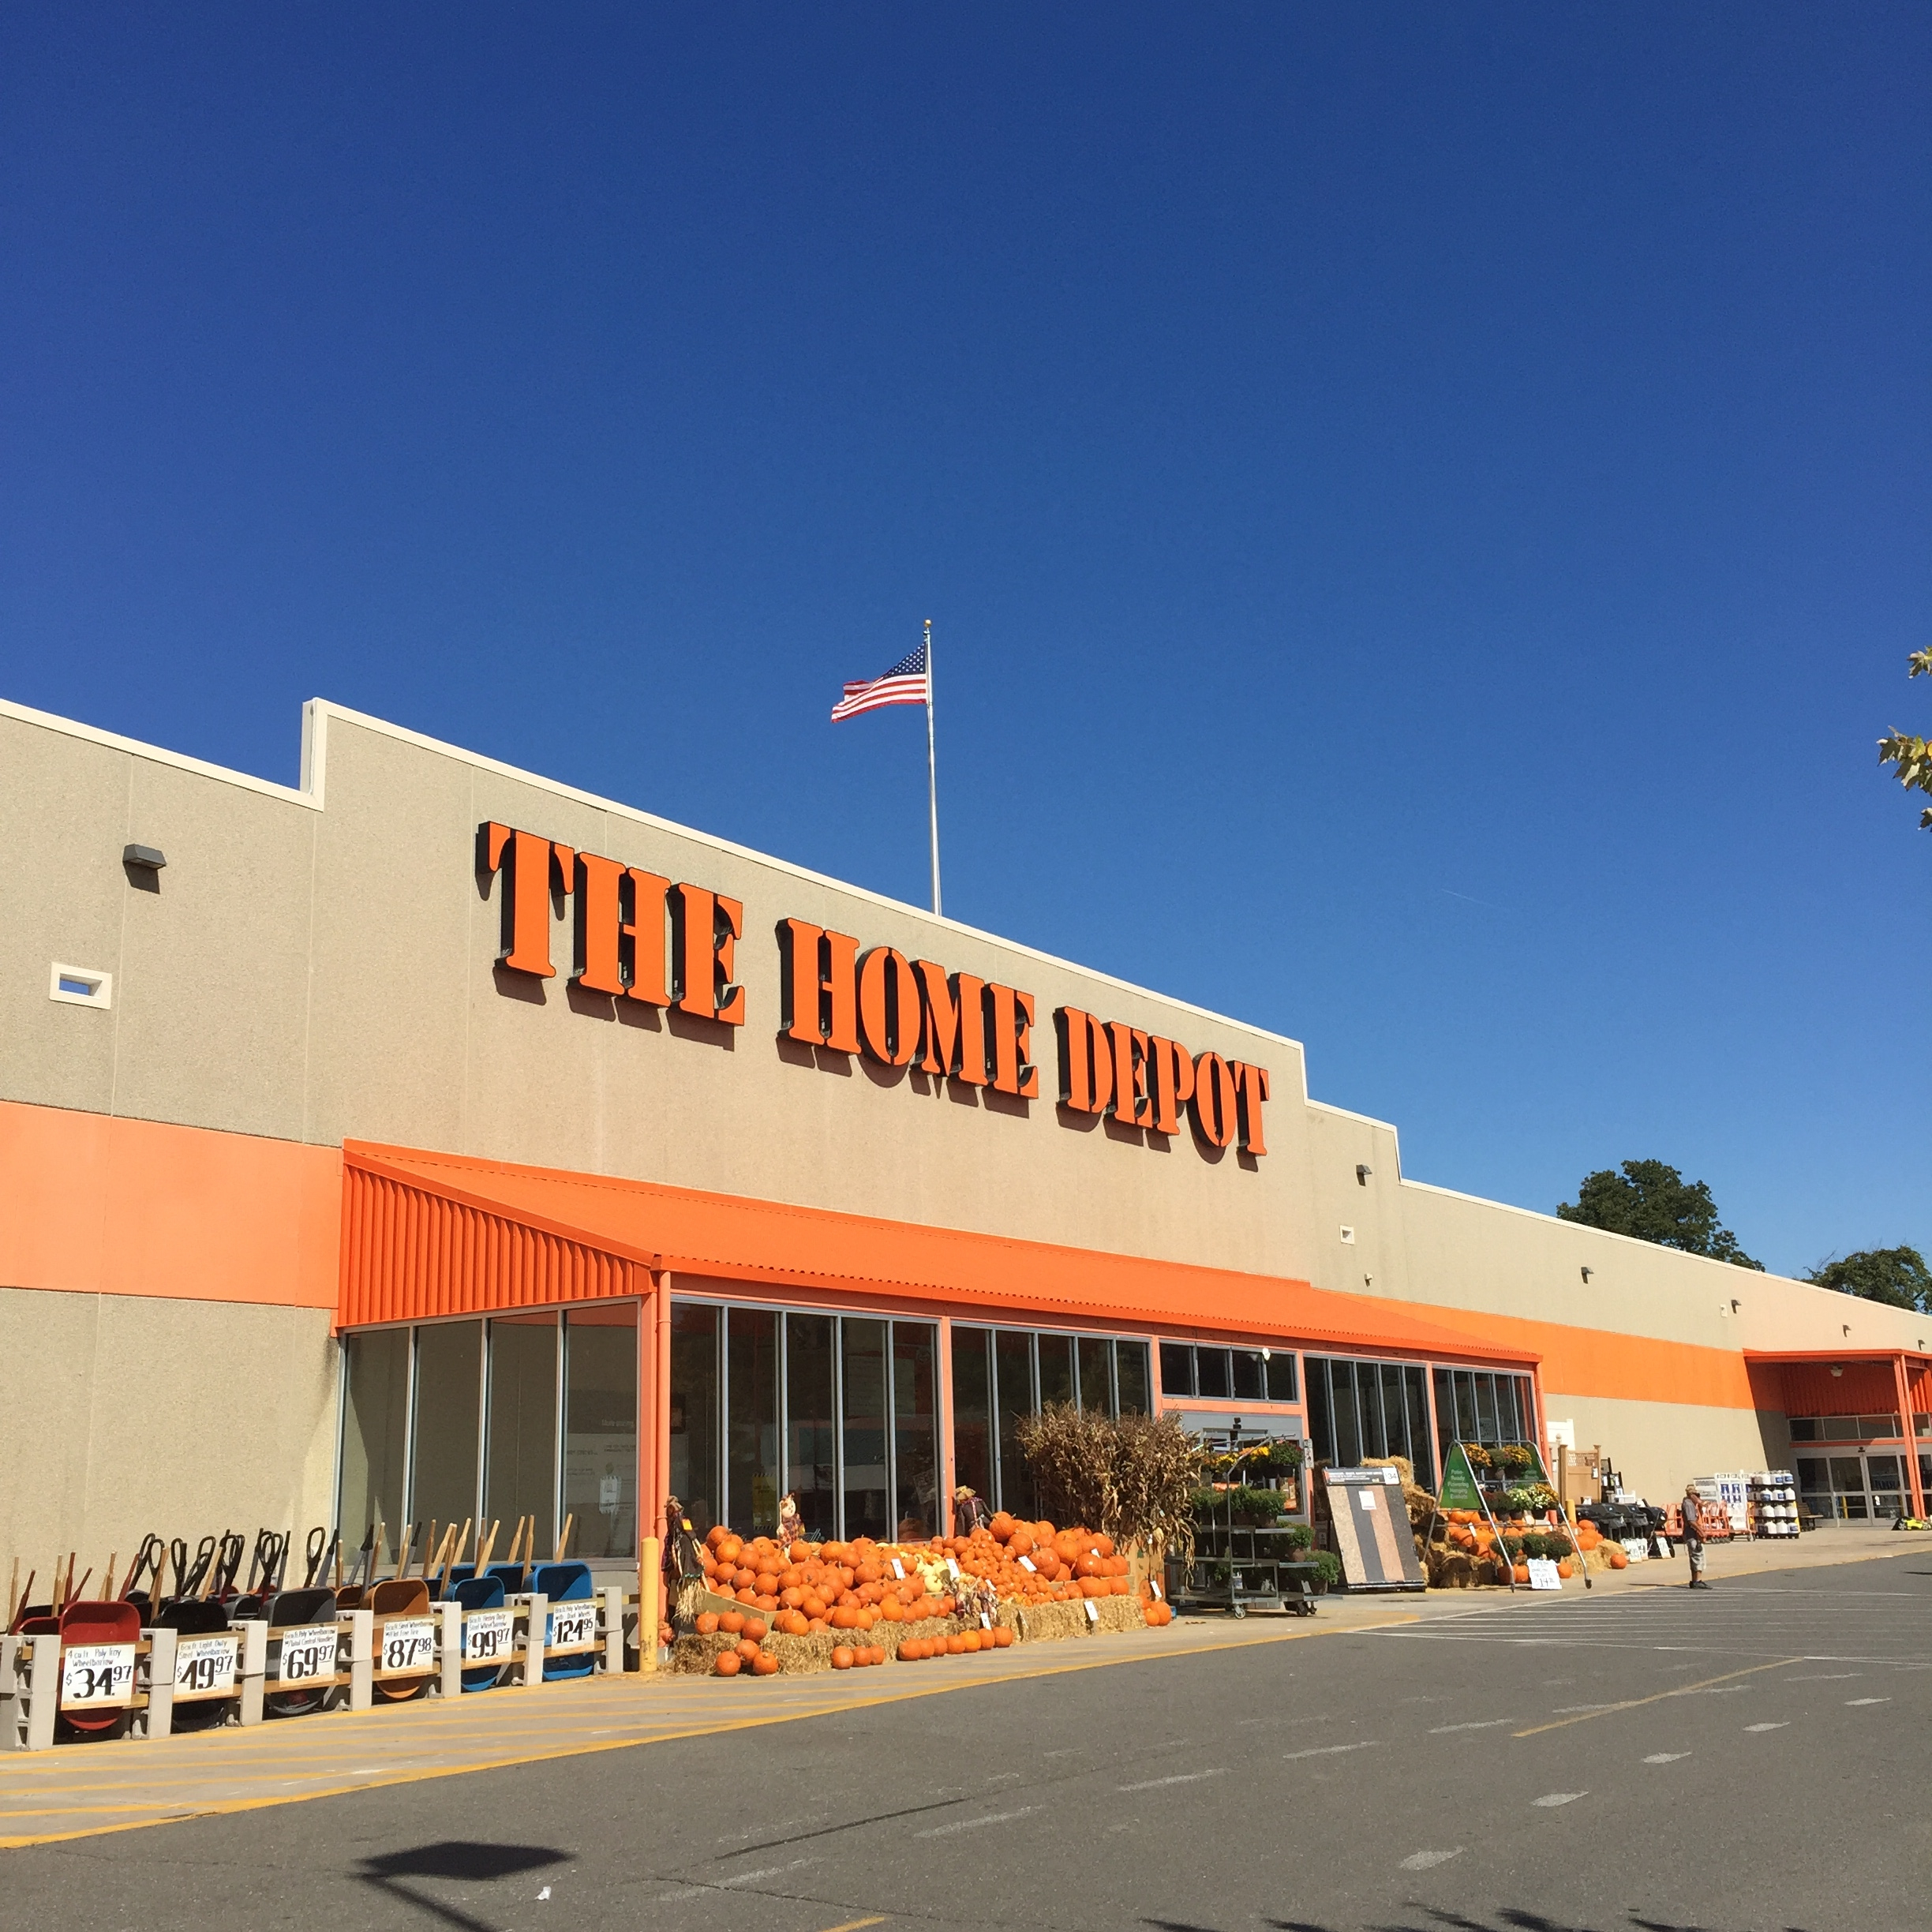 Outdoor Patio Furniture East Brunswick Nj: The Home Depot In Monmouth Junction, NJ 08852